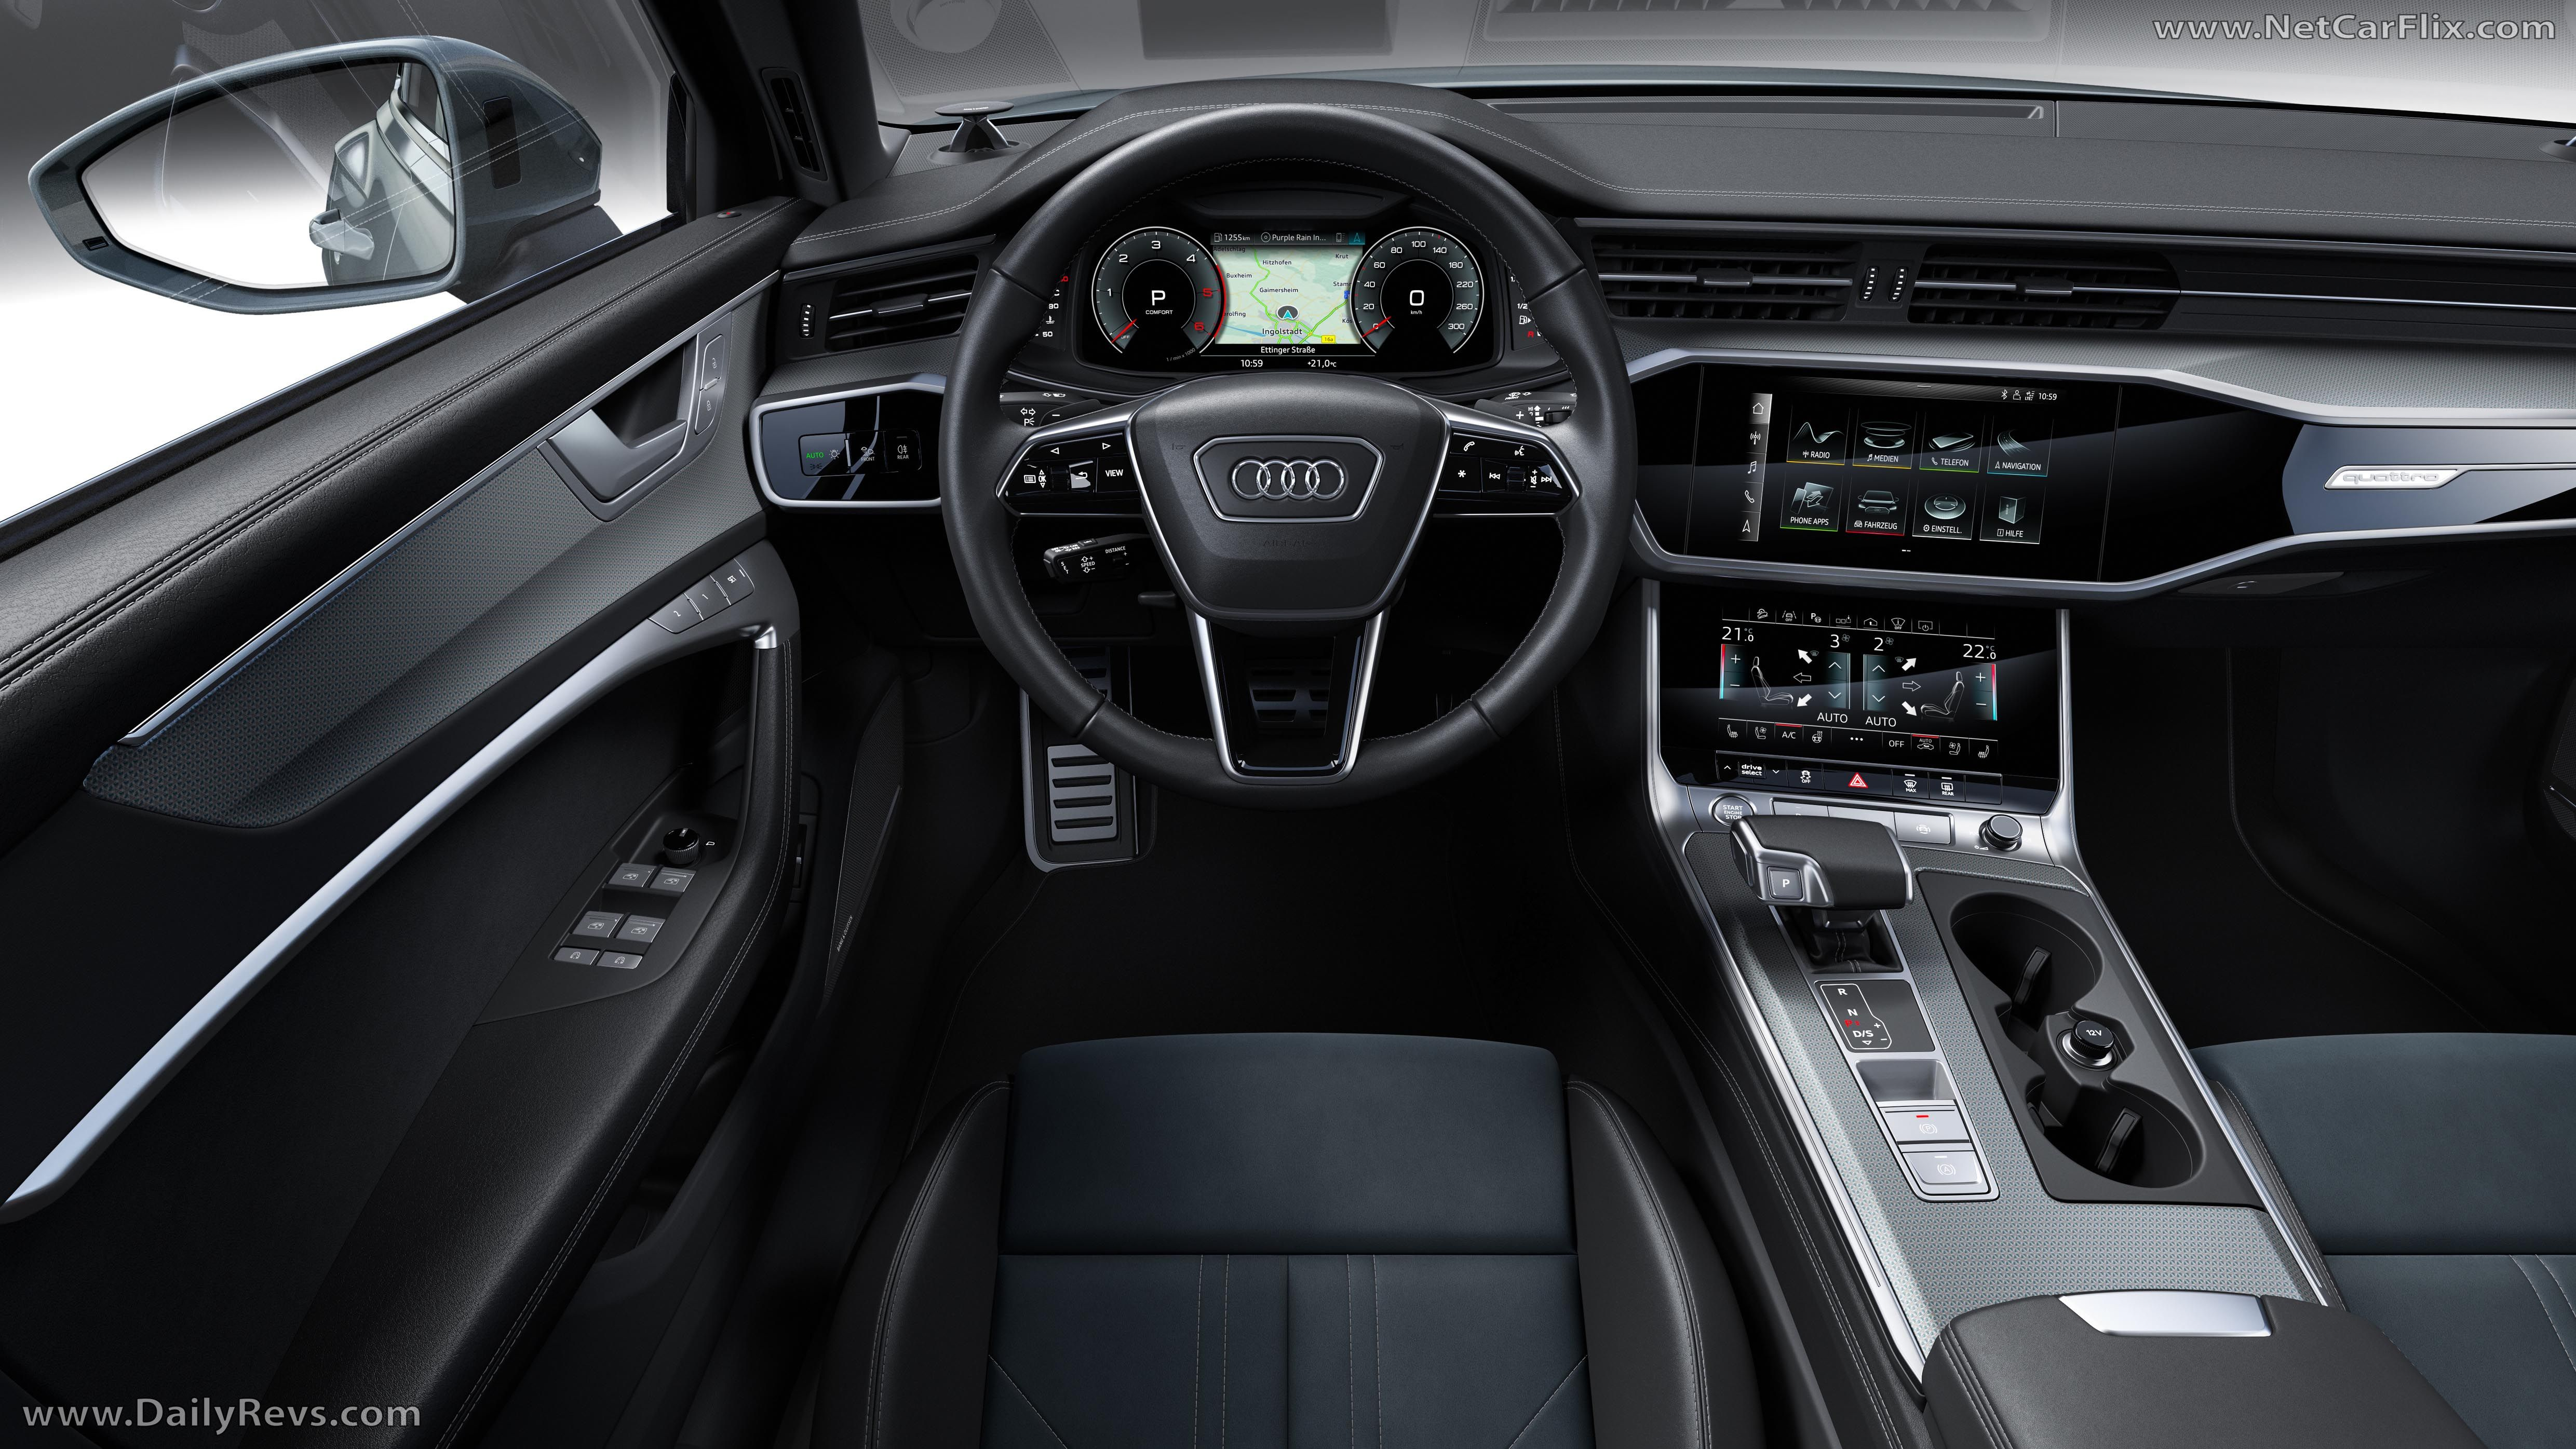 2020 Audi A6 Allroad Quattro Pictures Images Photos Wallpapers